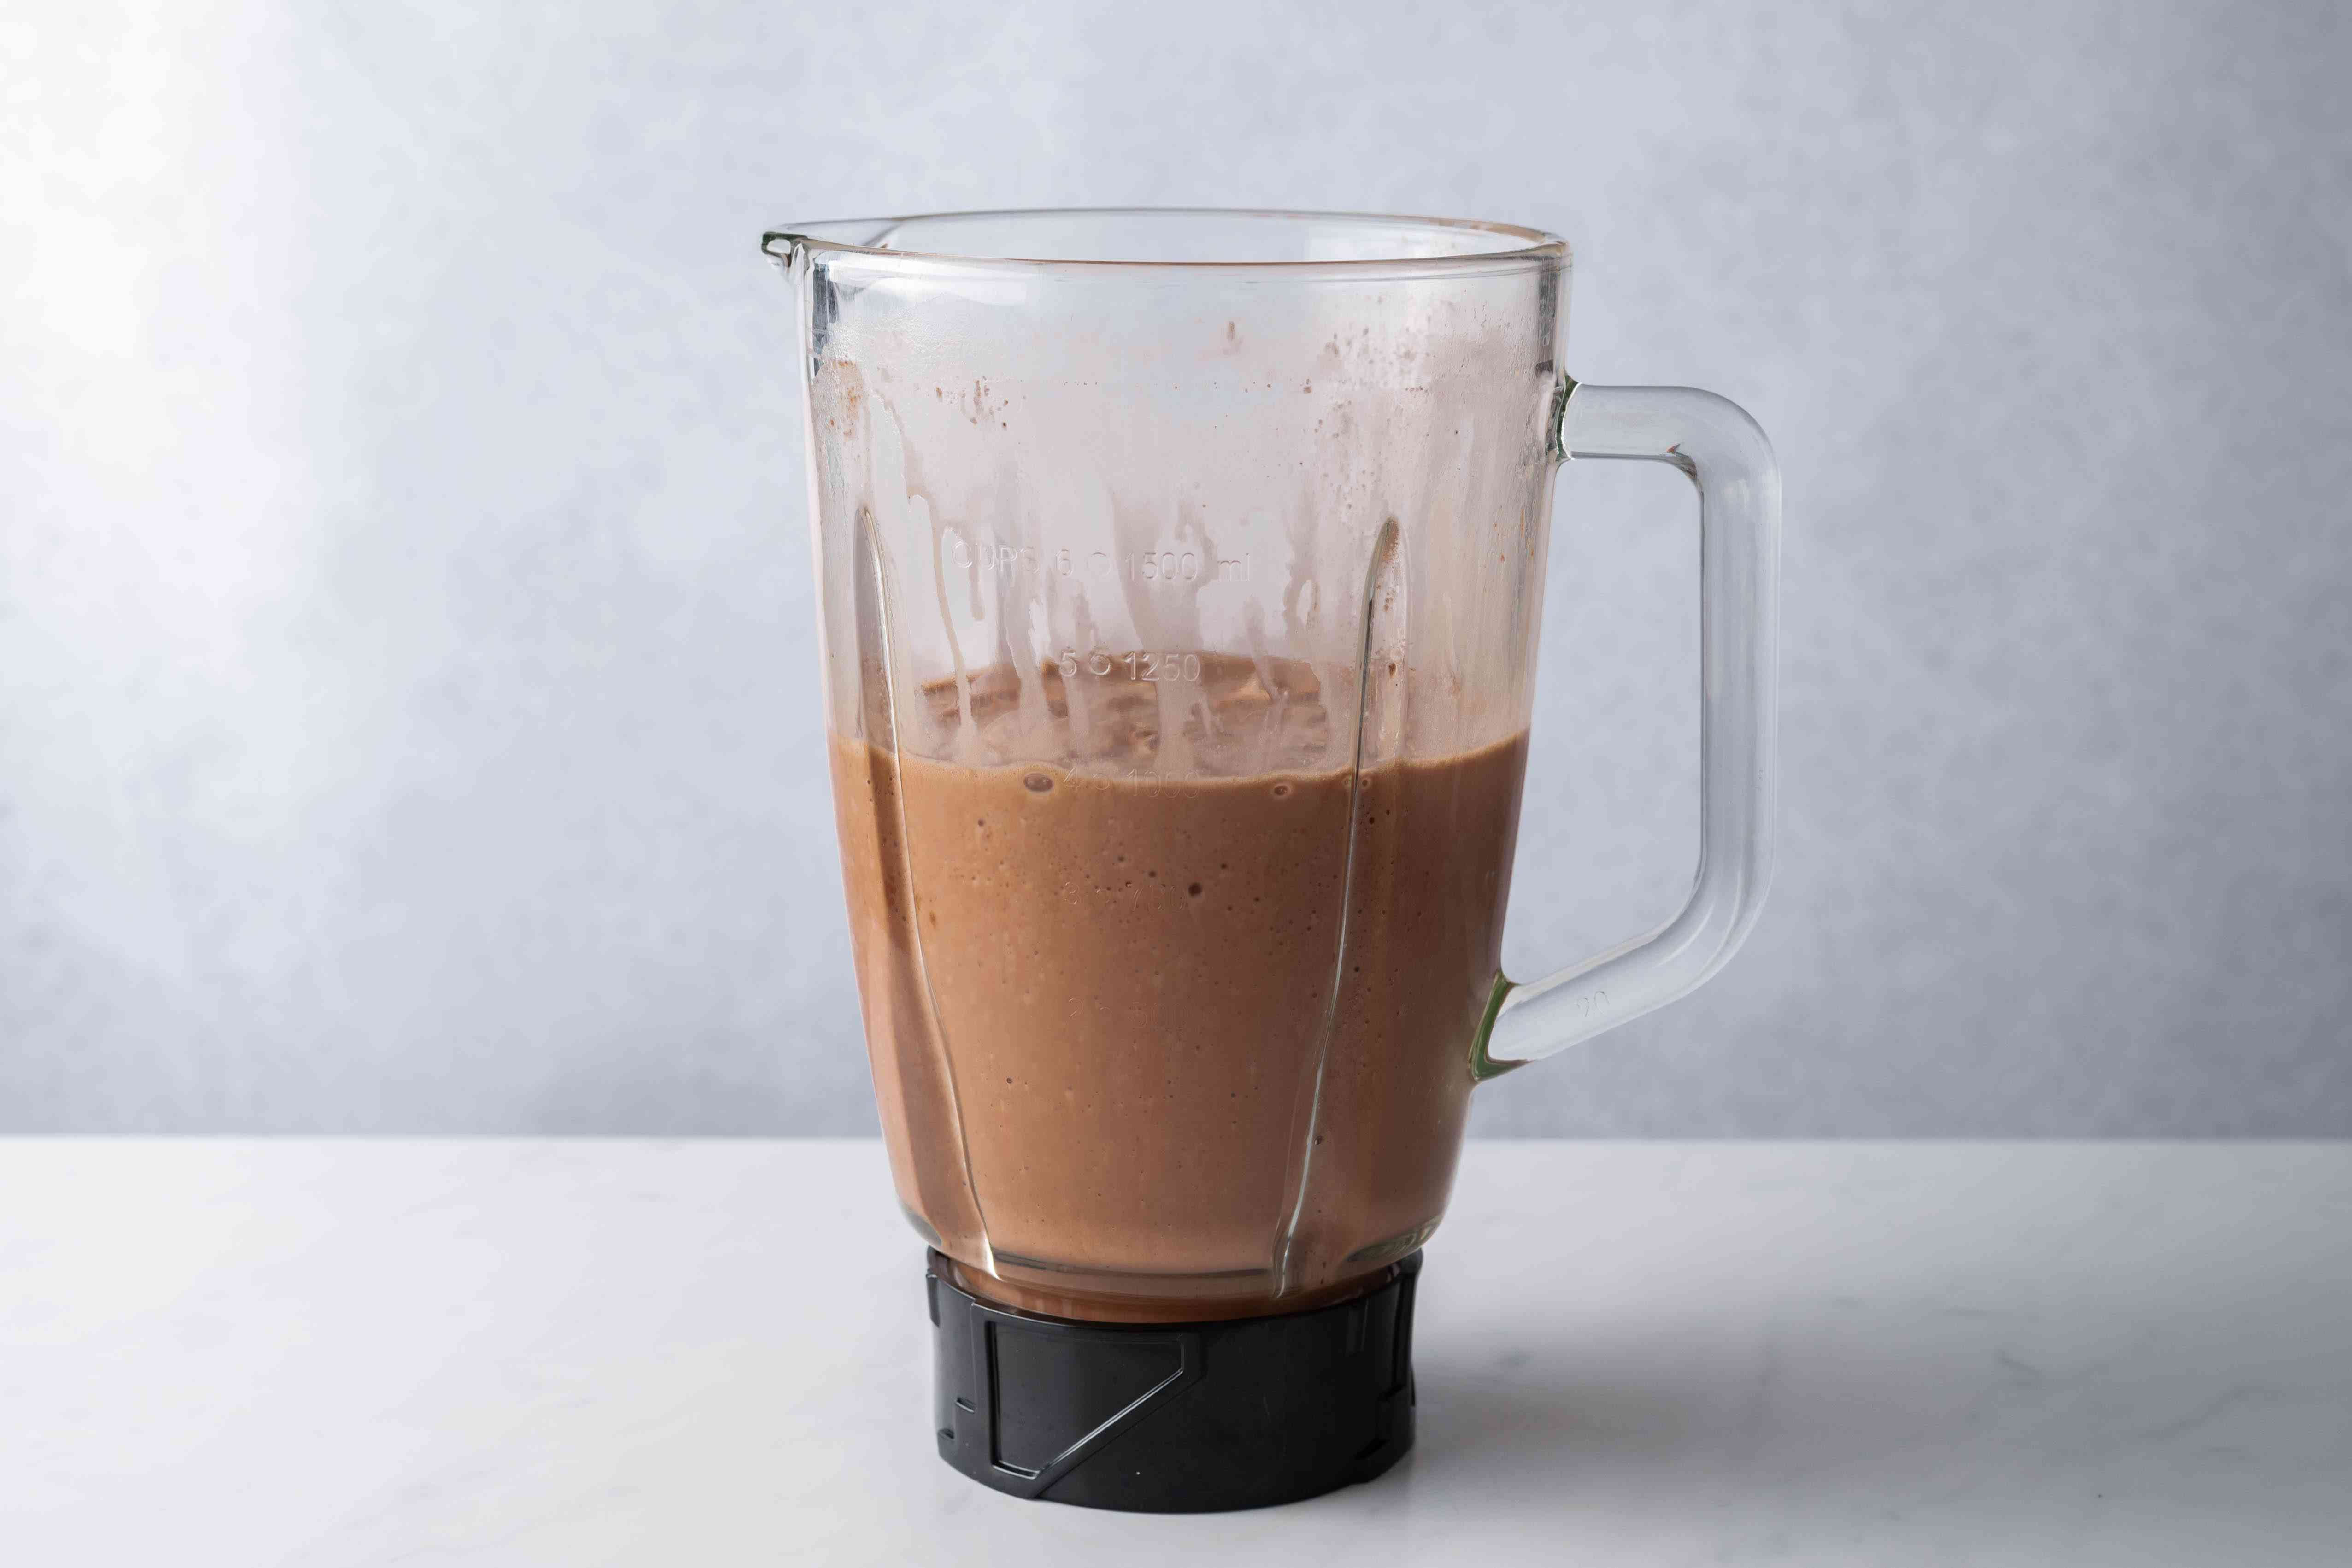 Blend the mixture on high until completely blended